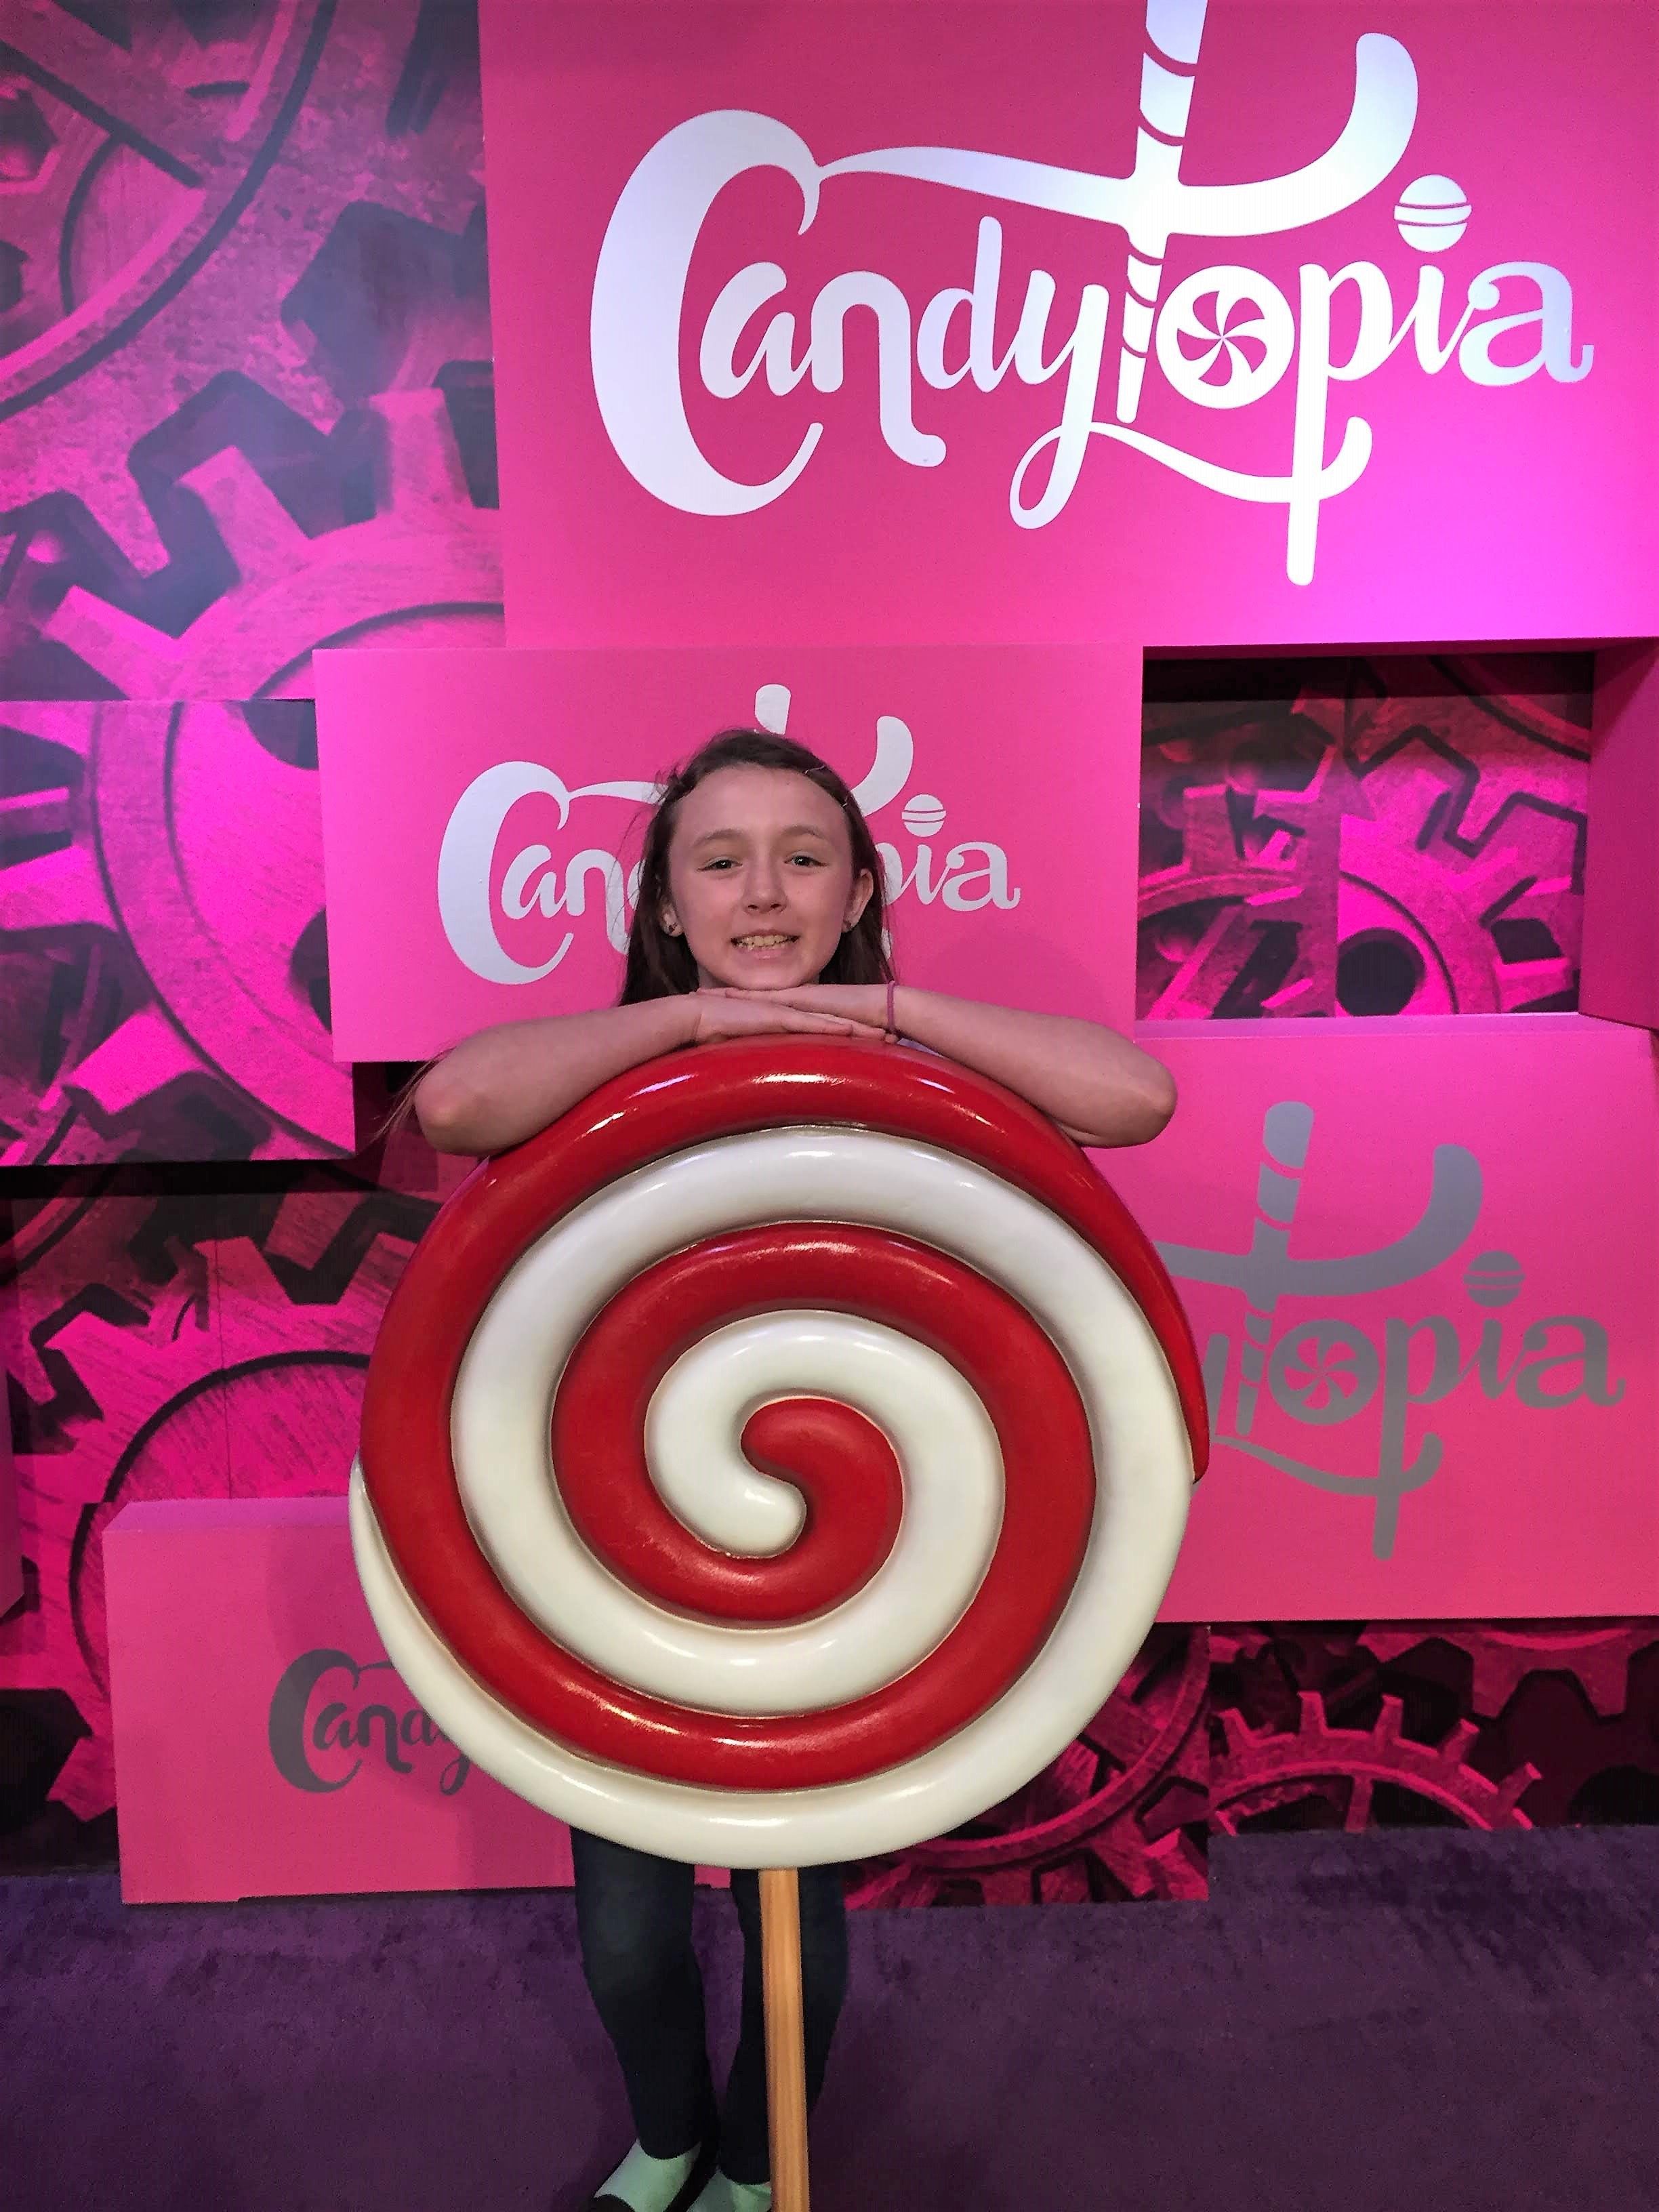 candytopia1